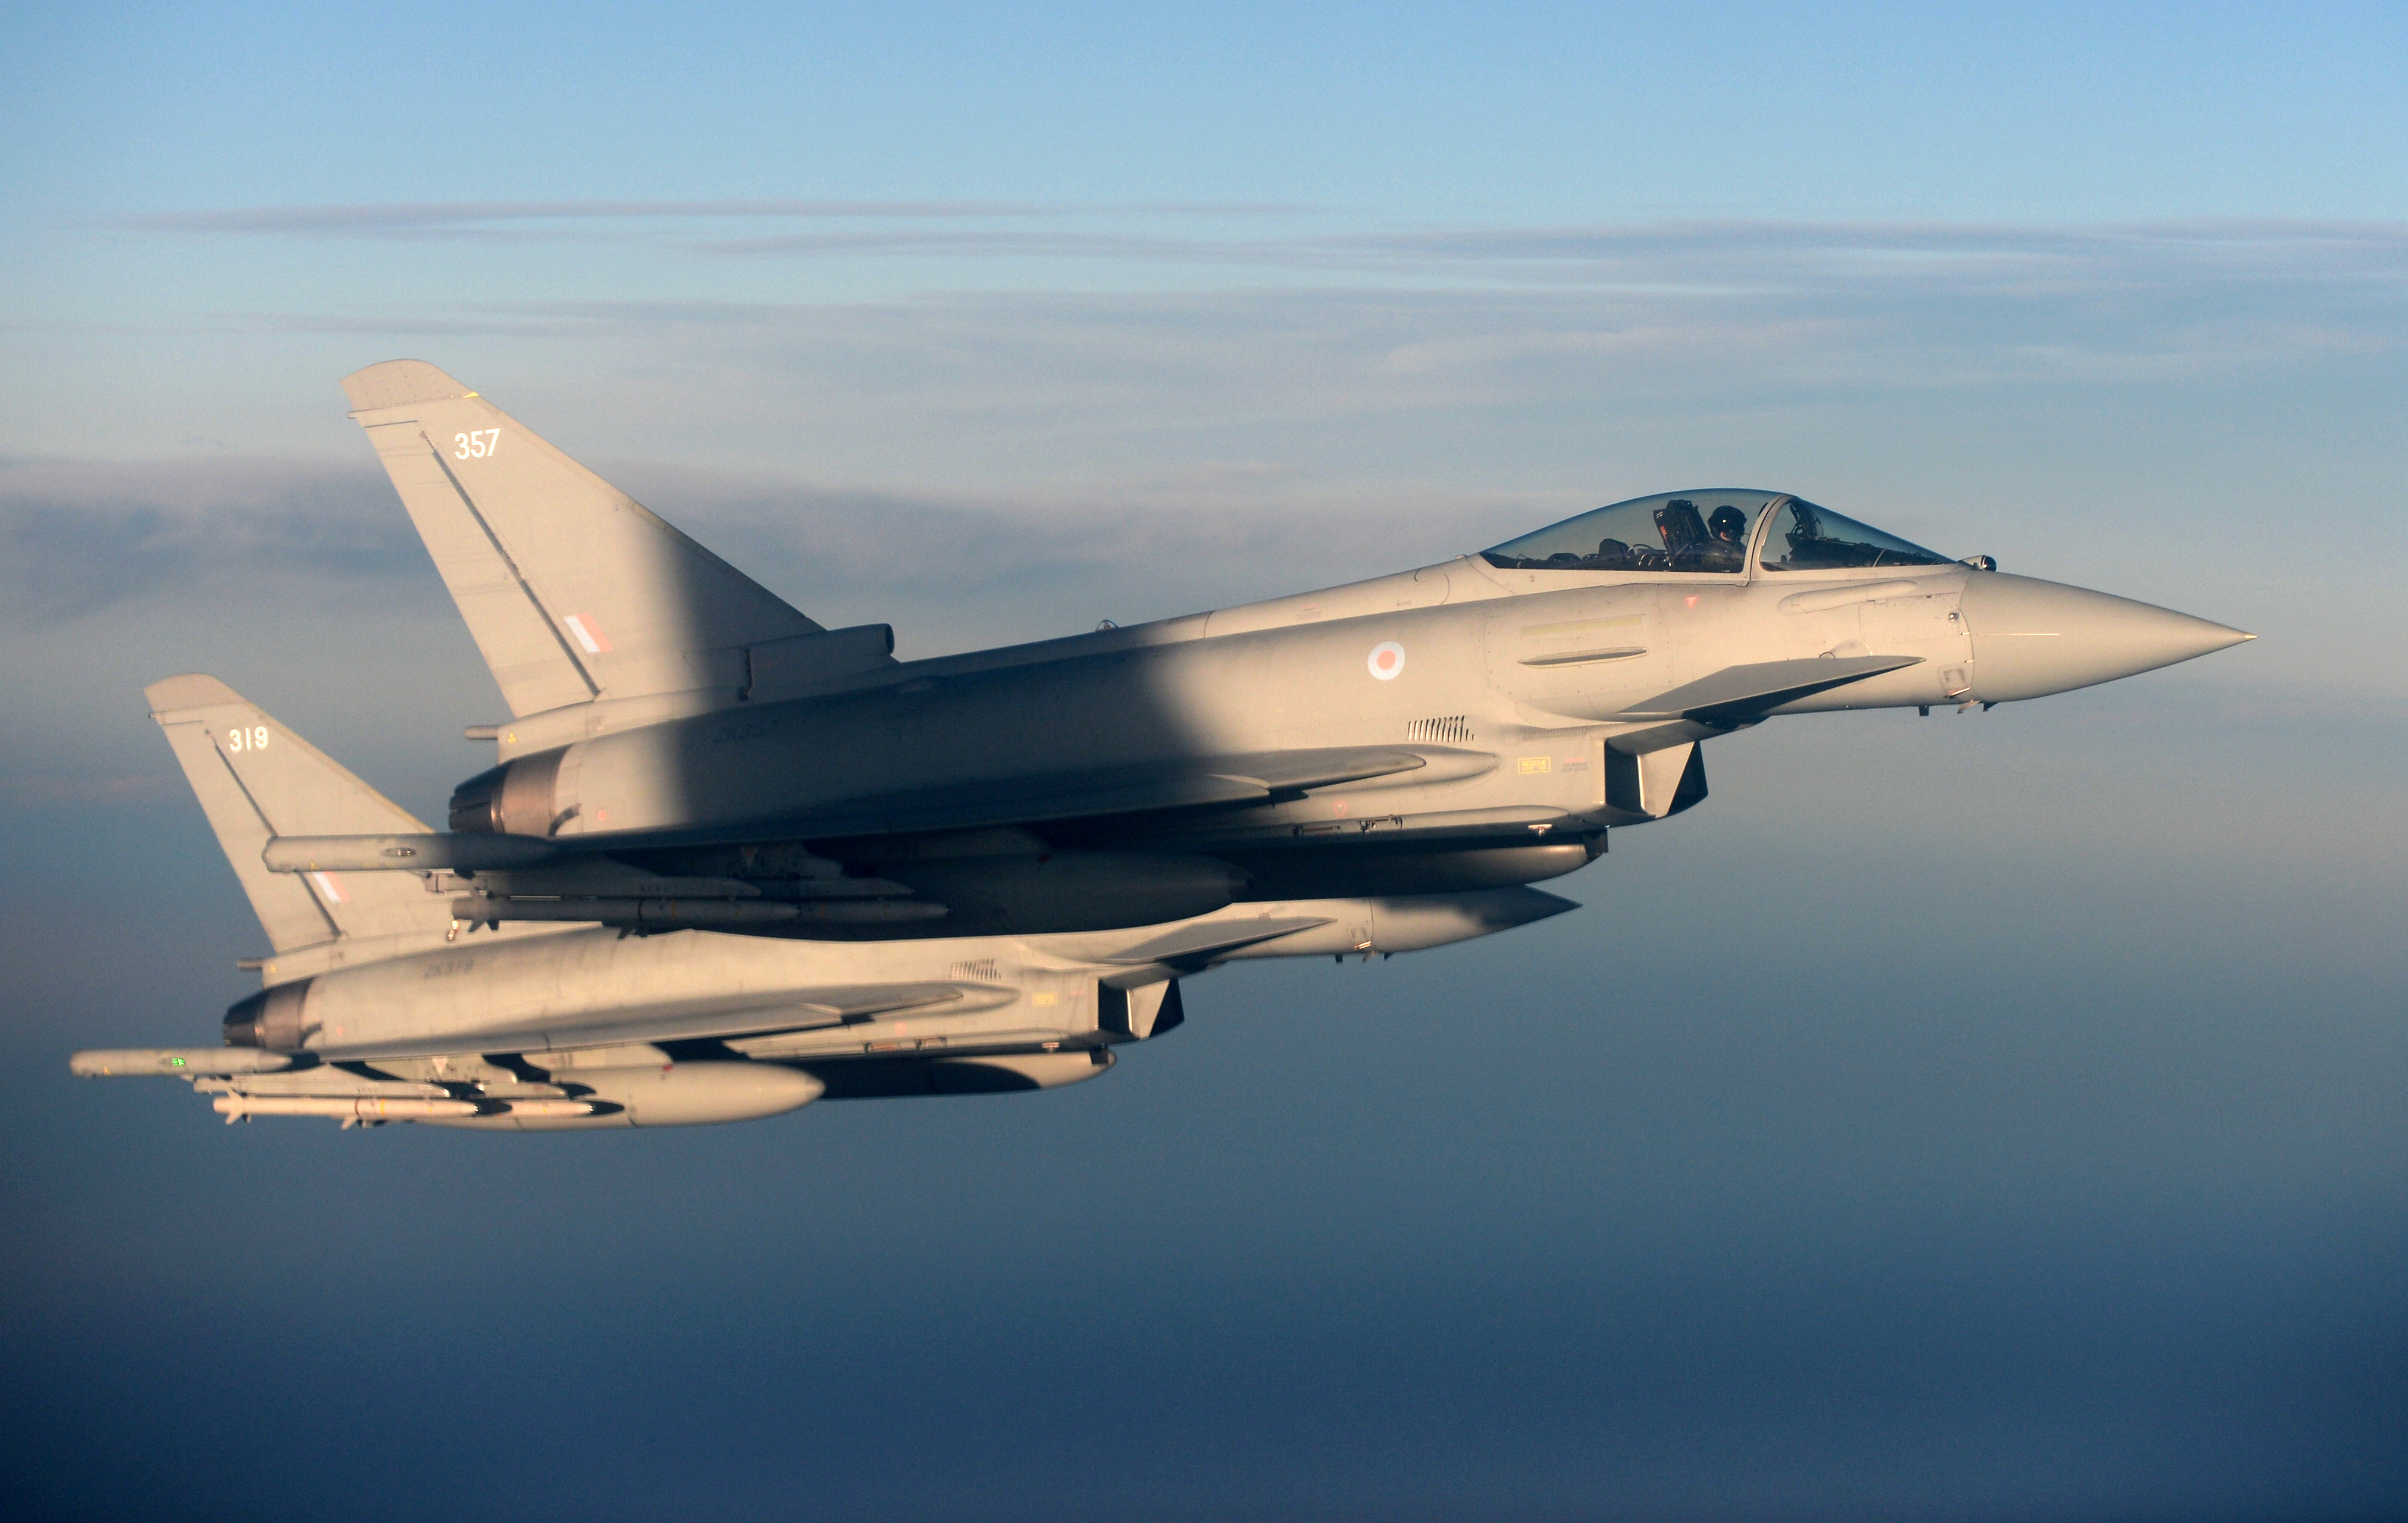 British Royal Air Force's Typhoon Eurofighter jets demonstrate the interception of a Belgian air force transport plane as they fly over Britain, January 14, 2020. Picture taken January 14, 2020. REUTERS/Johanna Geron/File Photo